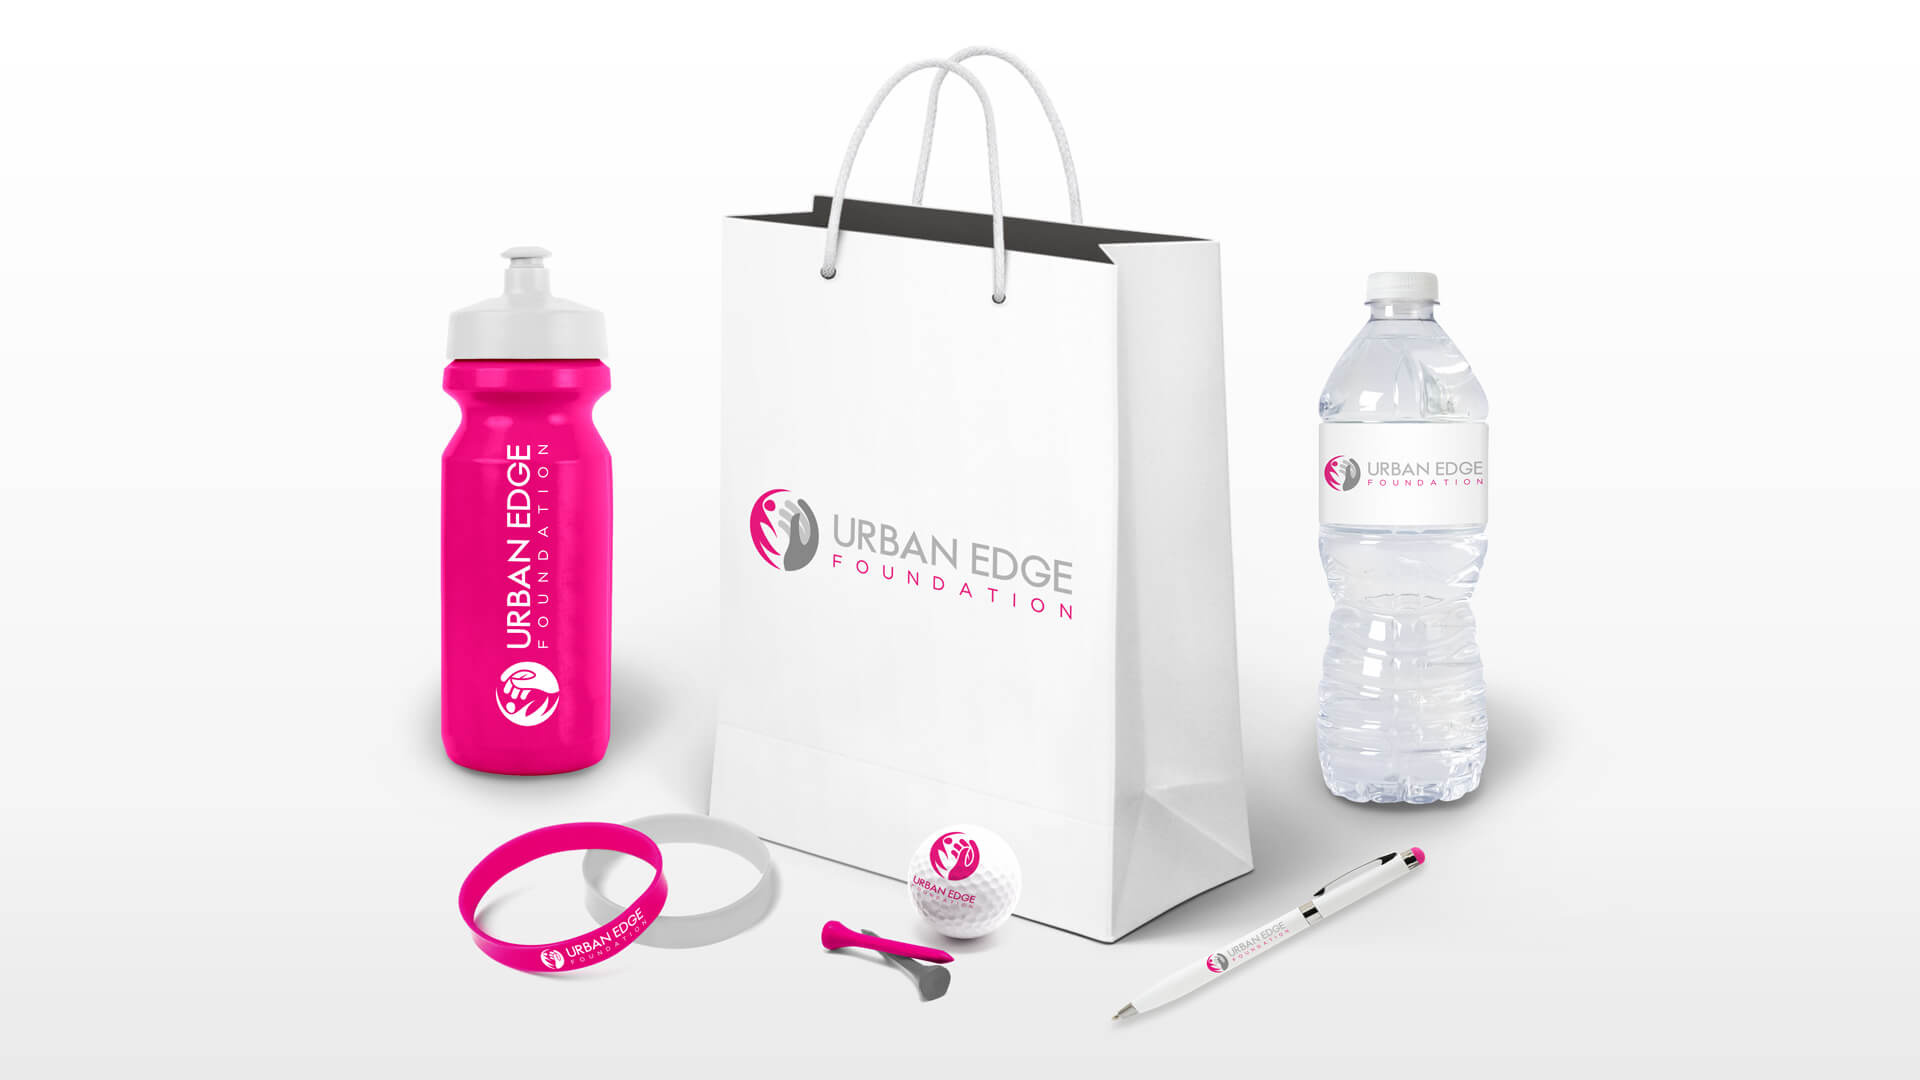 Urban Edge Foundation Marketing Materials